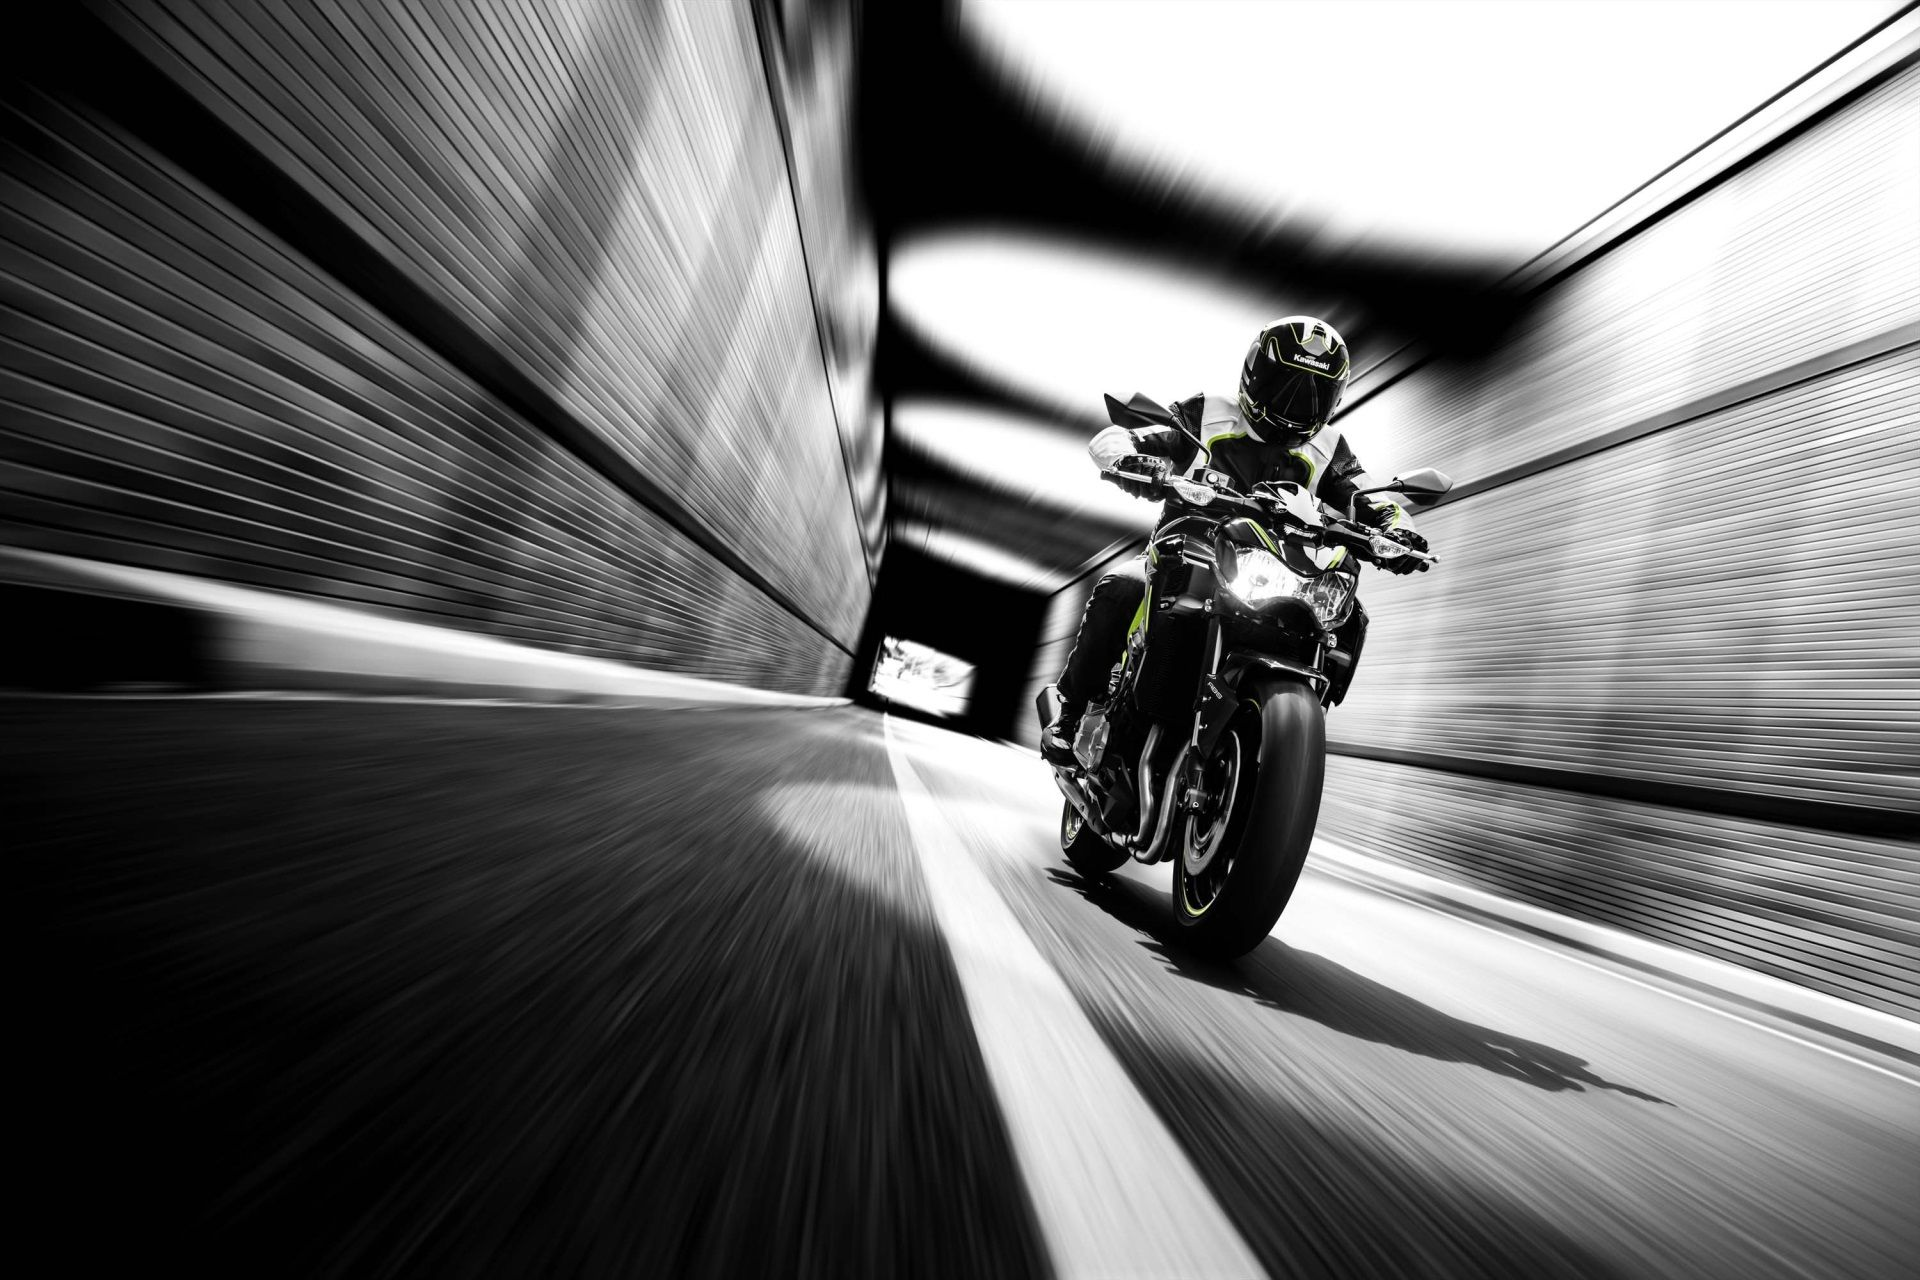 1920x1280 Kawasaki Z900 Abs Download Hd Wallpaper High Resolution